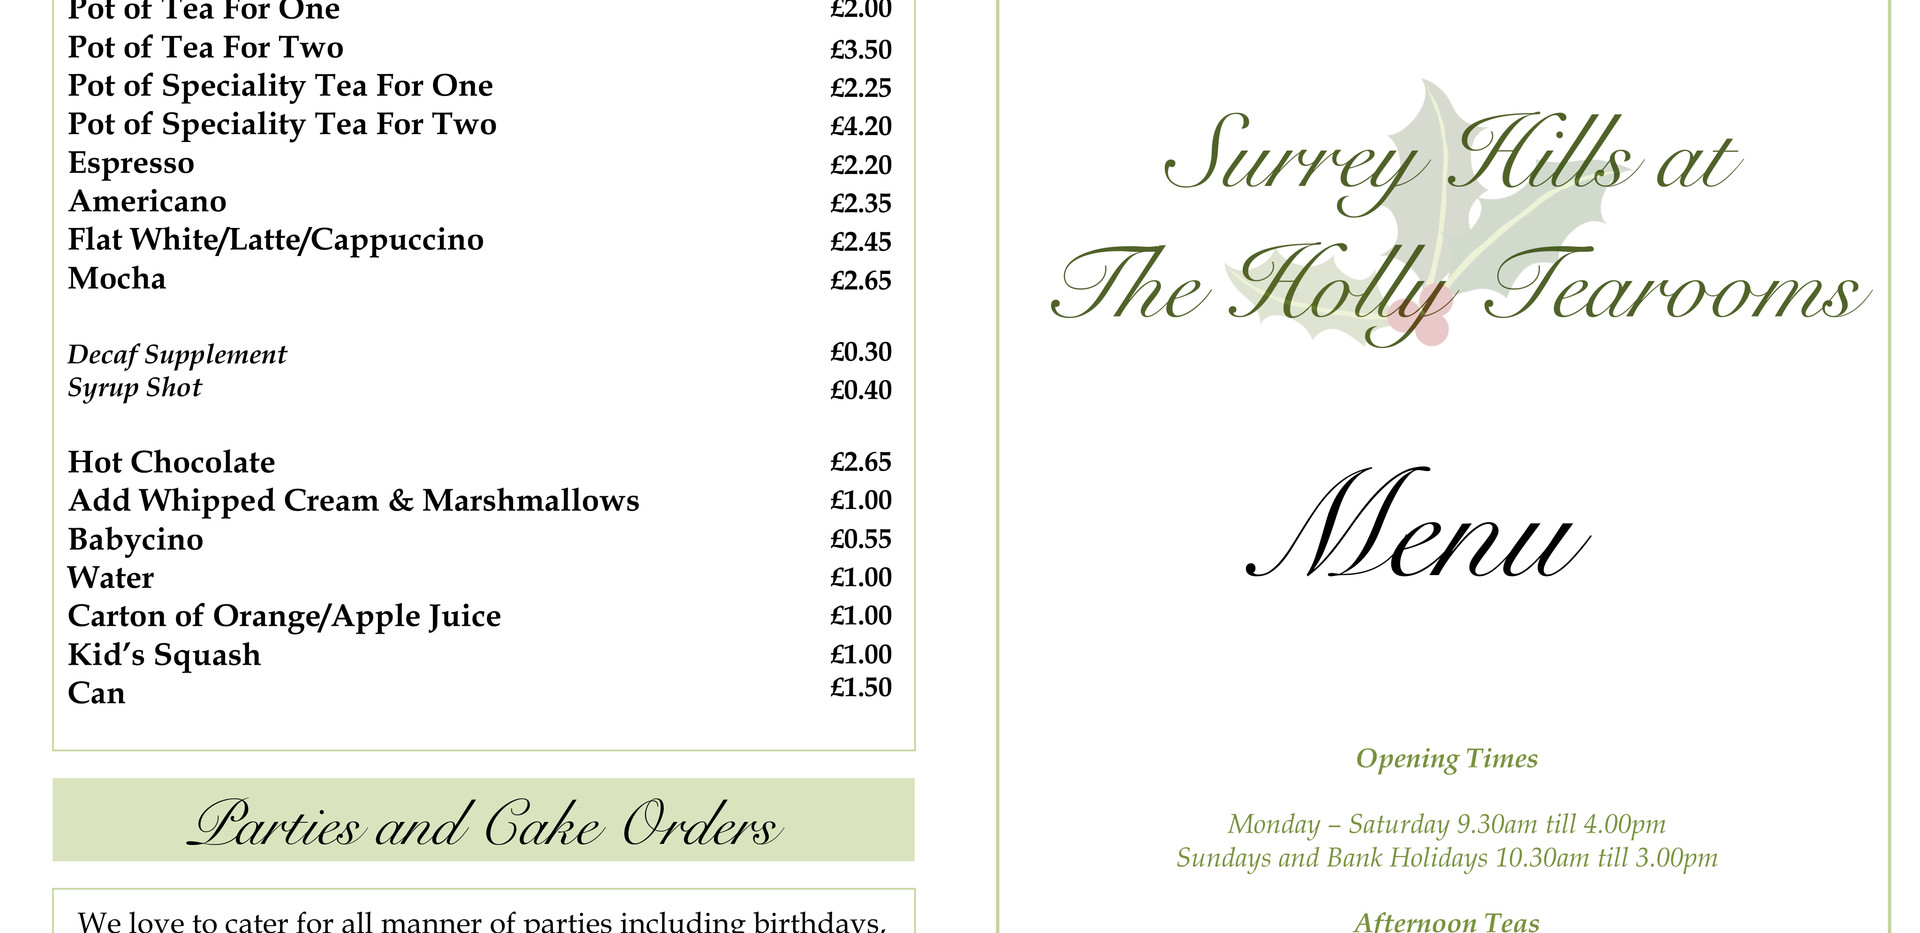 Surrey Hills at The Holly Tearooms Menu.